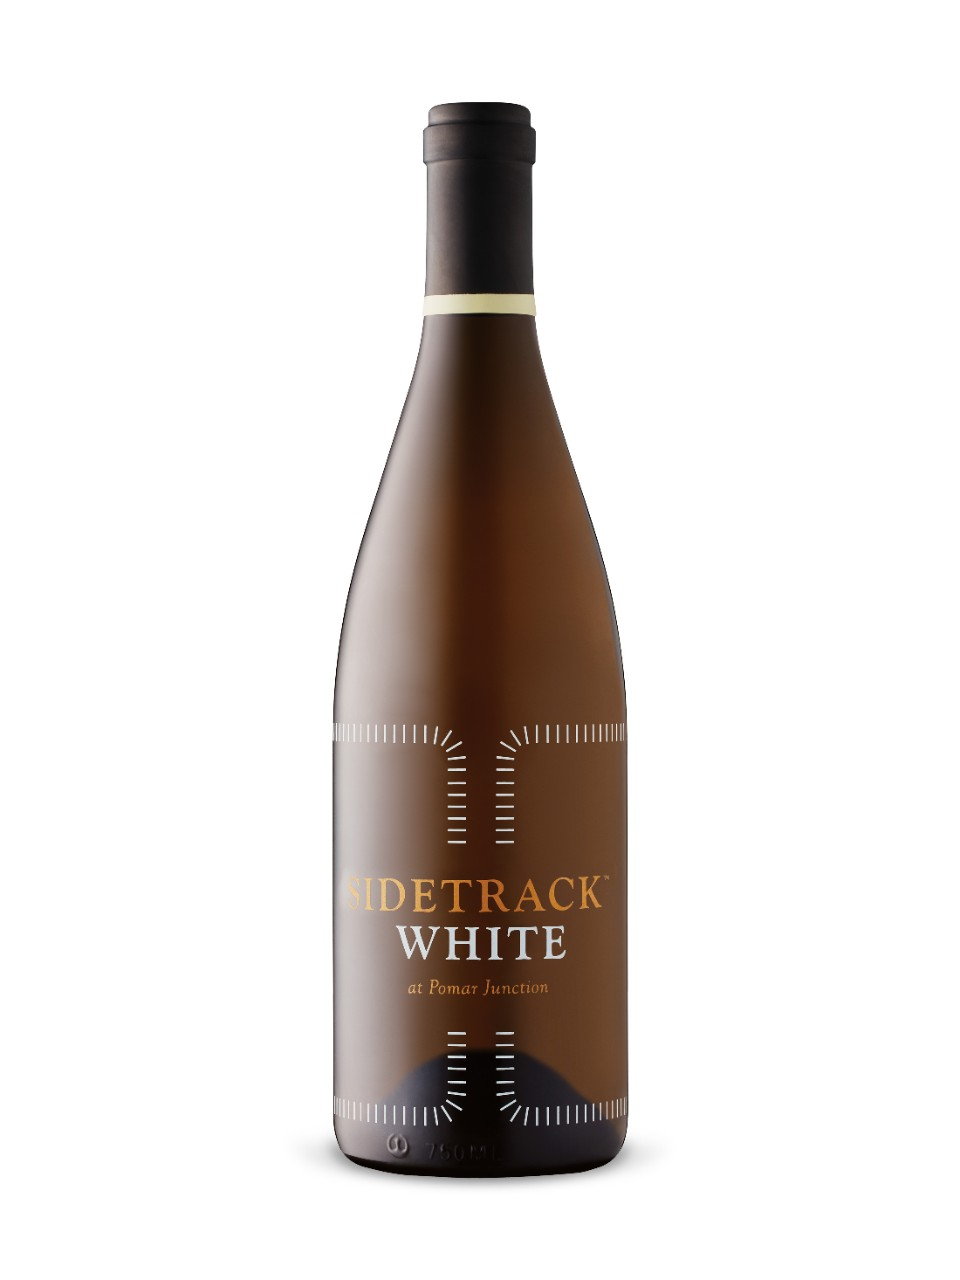 Image for Pomar Junction Sidetrack White 2017 from LCBO